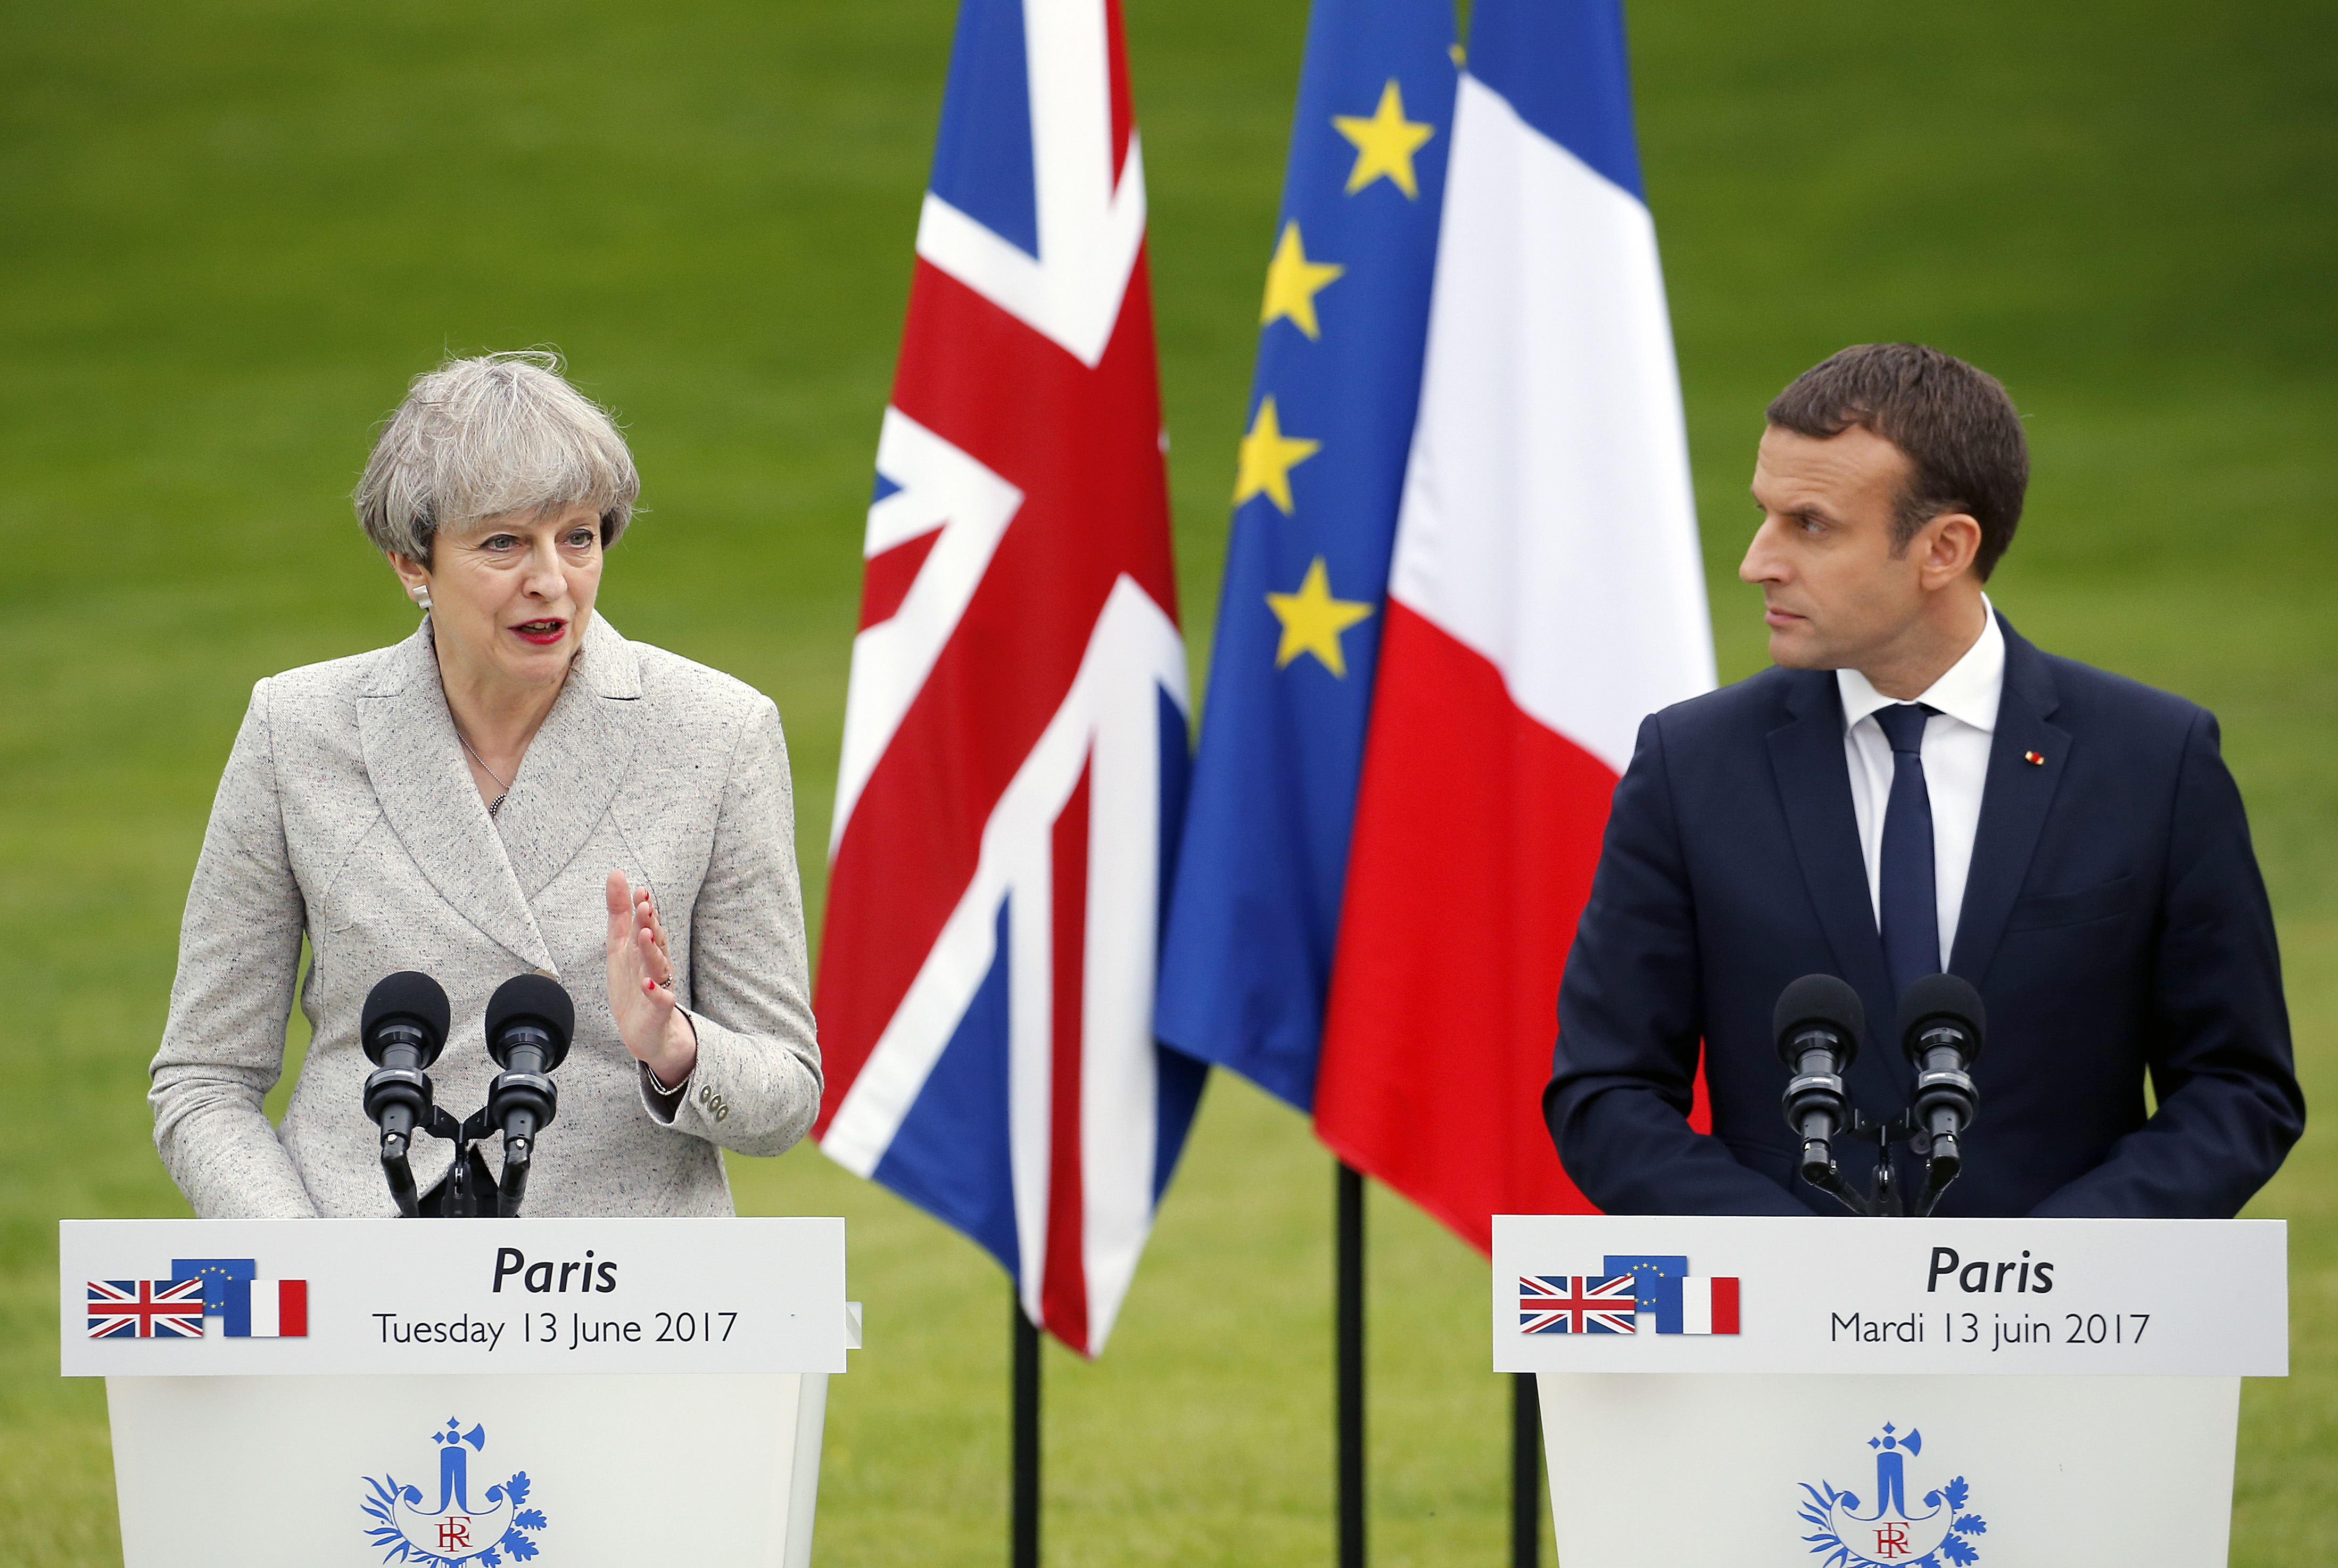 British Prime Minister Theresa May gives a joint press conference with French President Emmanuel Macron in Paris on June 13. May's negotiating position for Brexit has weakened following the elections. (Thierry Chesnot/Getty Images)